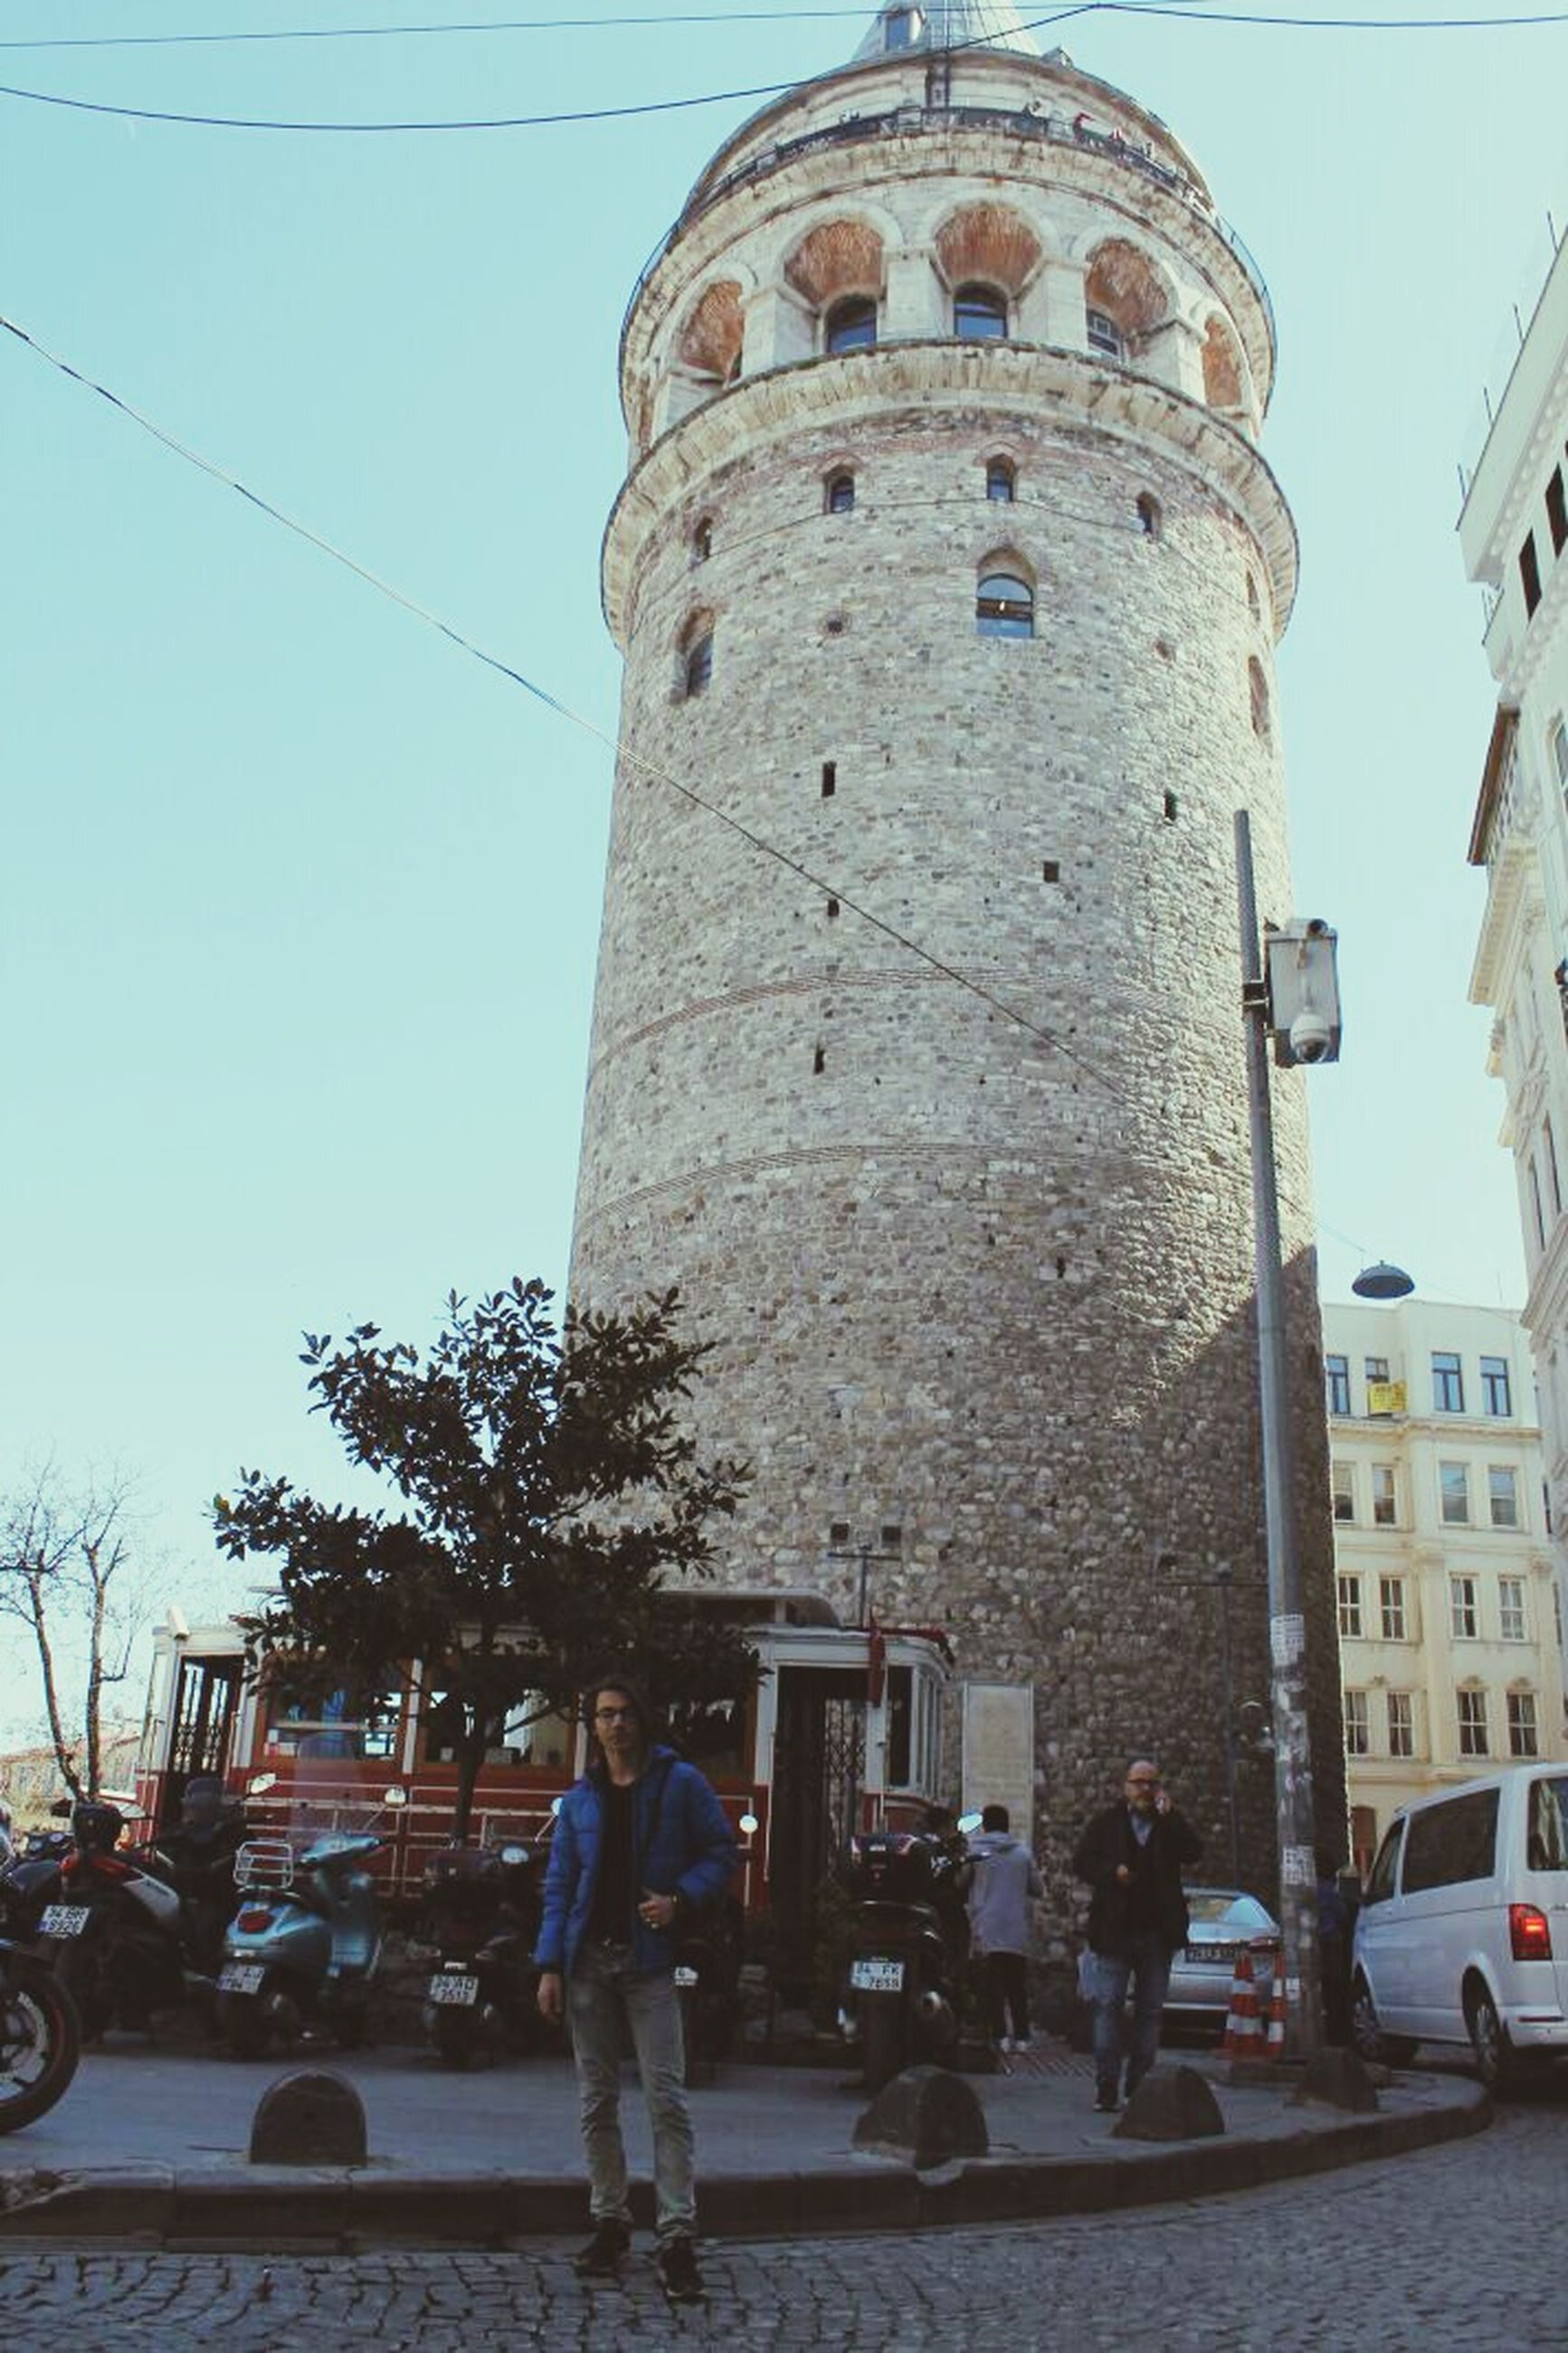 city, tower, built structure, architecture, car, outdoors, travel destinations, day, sky, adults only, real people, people, adult, one person